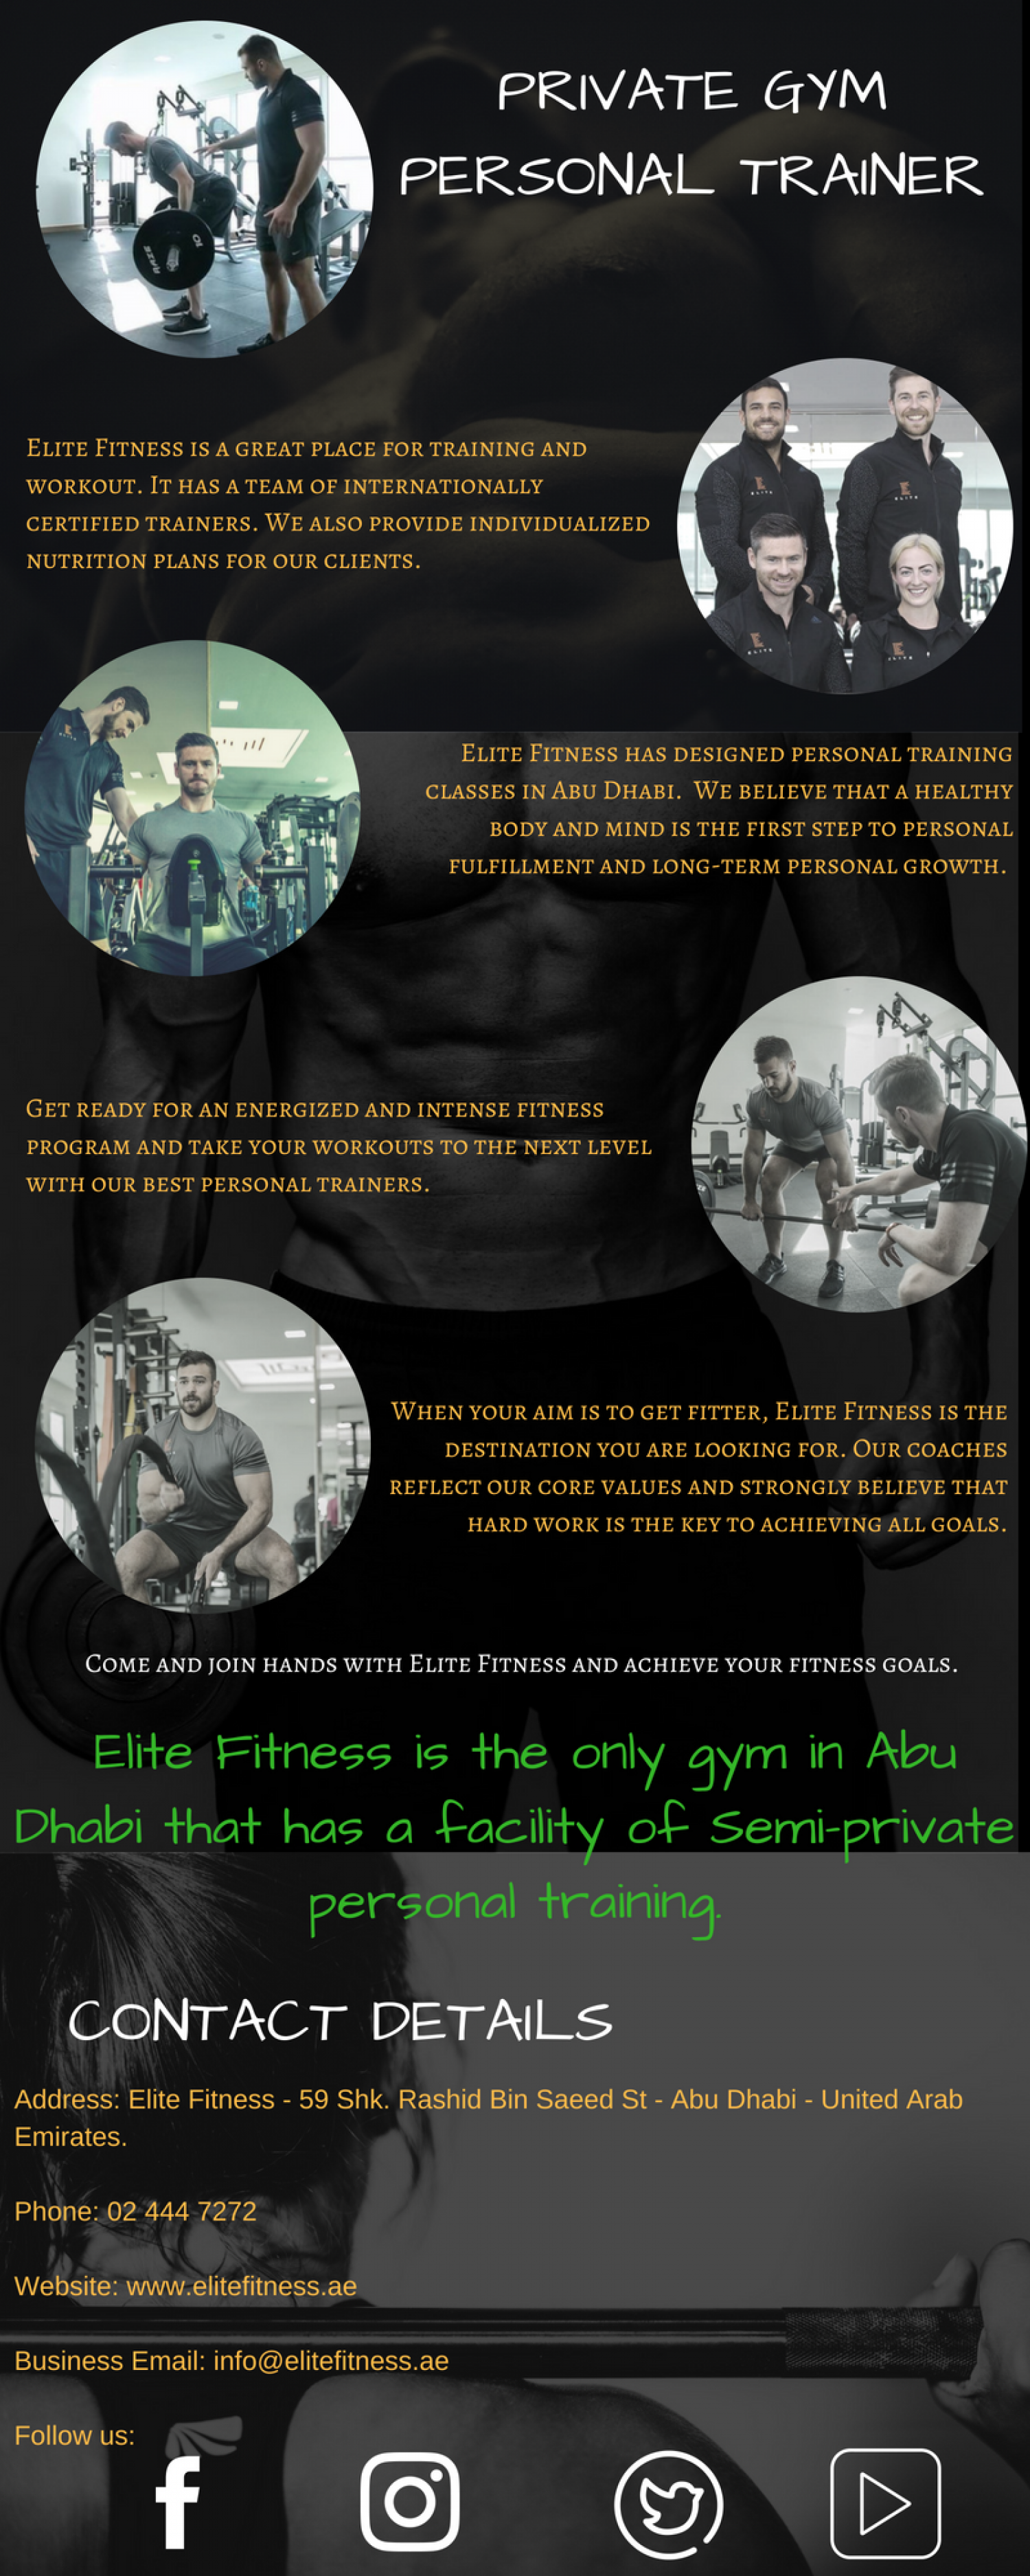 Private Gym Personal Trainer Infographic